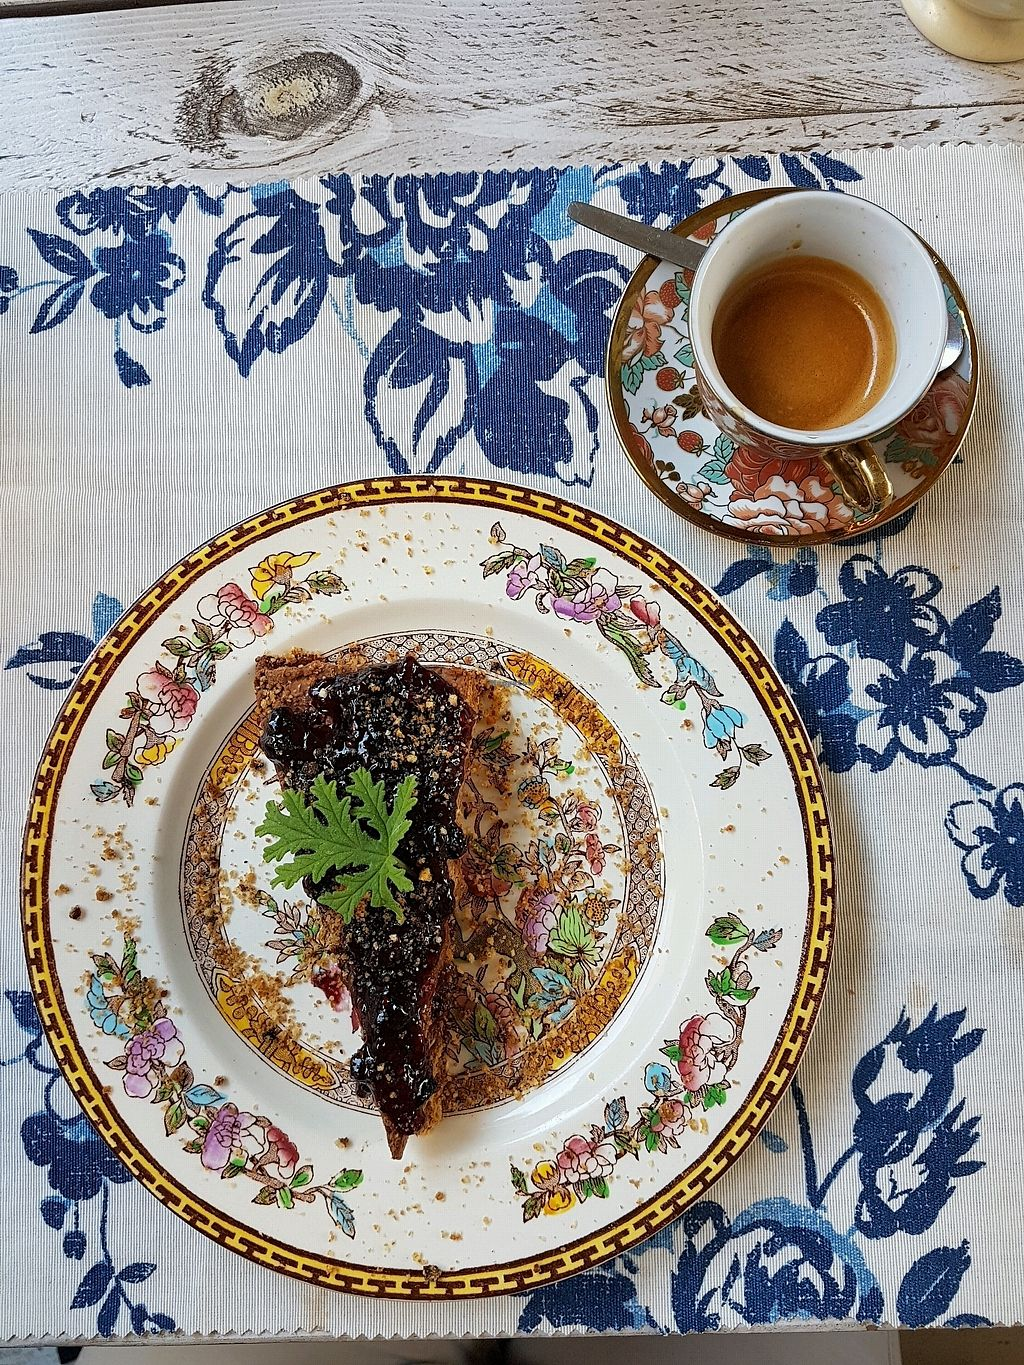 """Photo of Yard of Taste  by <a href=""""/members/profile/vegan_healthy_woman"""">vegan_healthy_woman</a> <br/>Veganes Dessert <br/> November 7, 2017  - <a href='/contact/abuse/image/73484/322942'>Report</a>"""